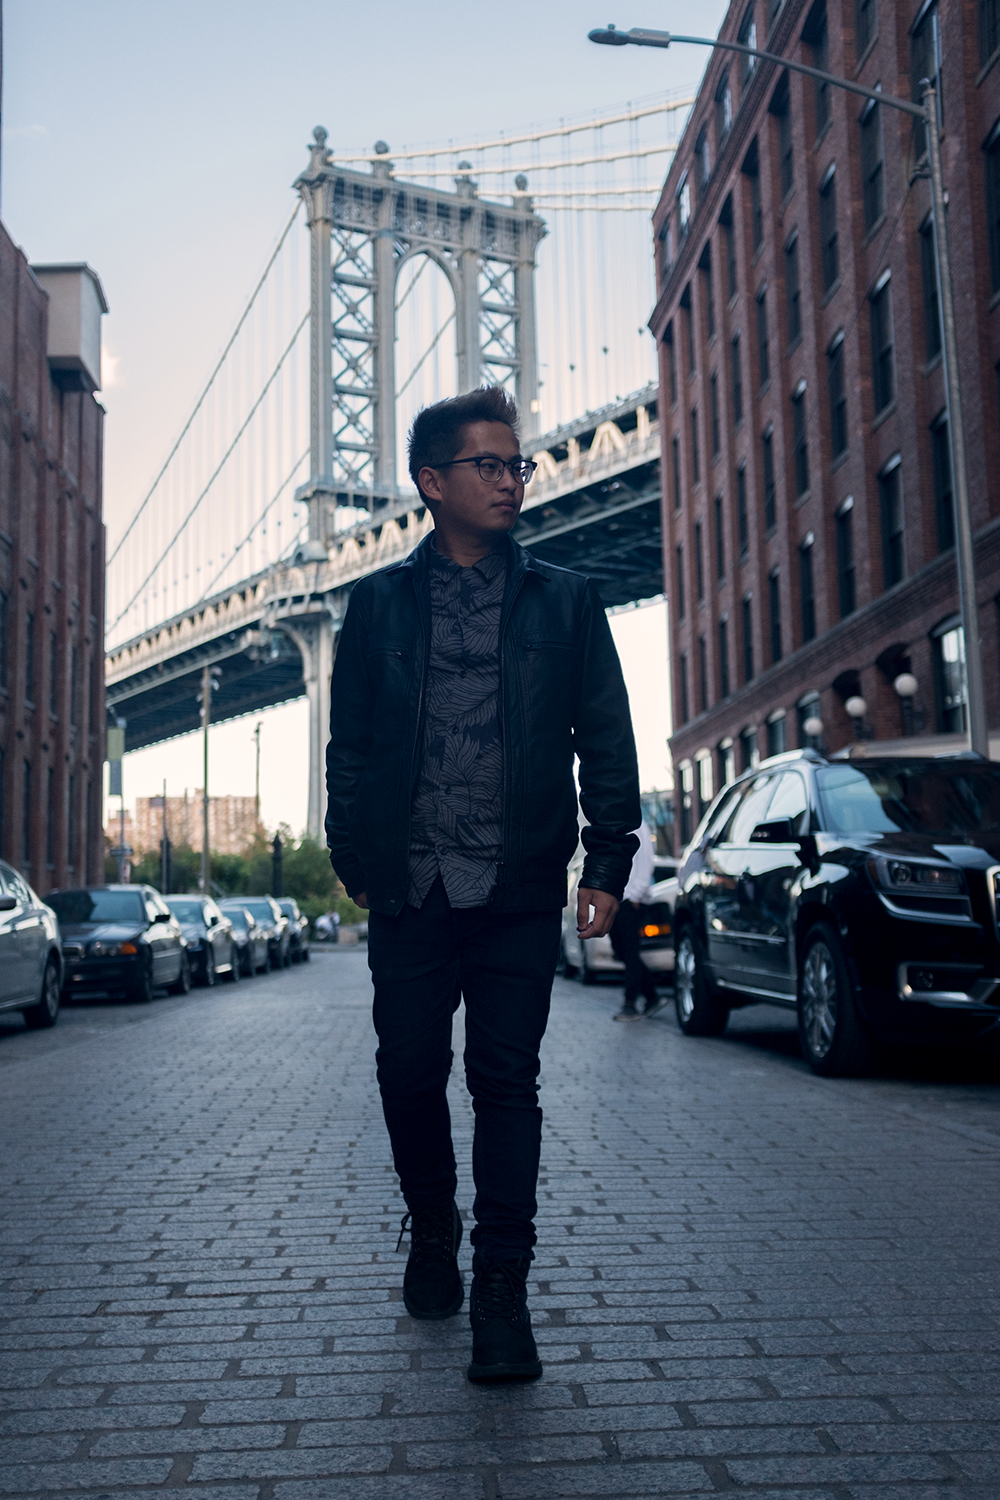 Henry-Henrykhwu-HoboLife-NYC-BrooklynBridge